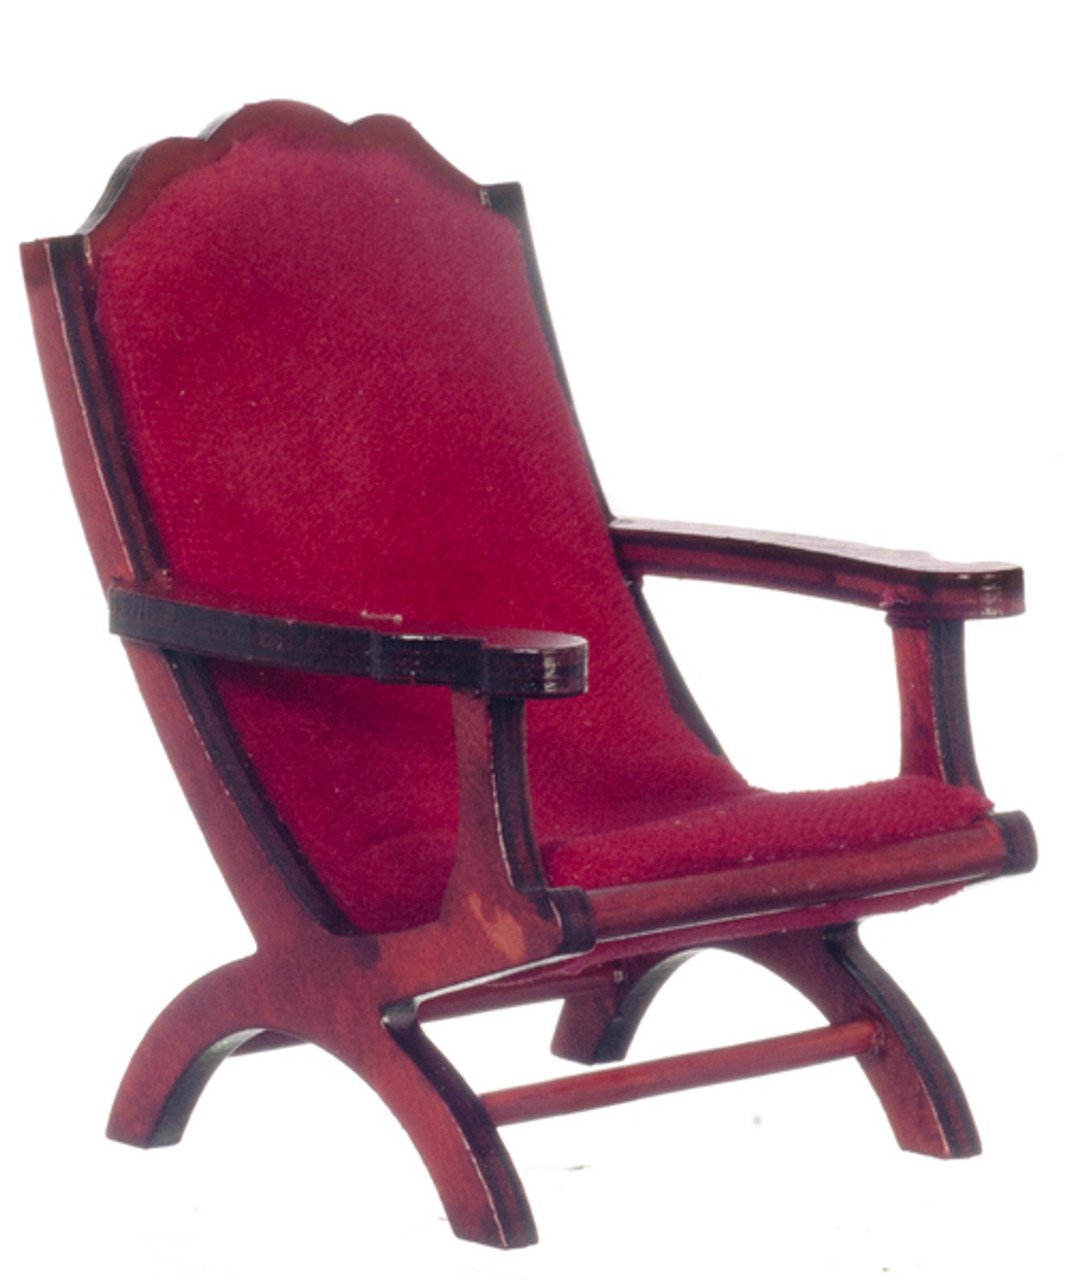 Campeach Chair - Mahogany and Red